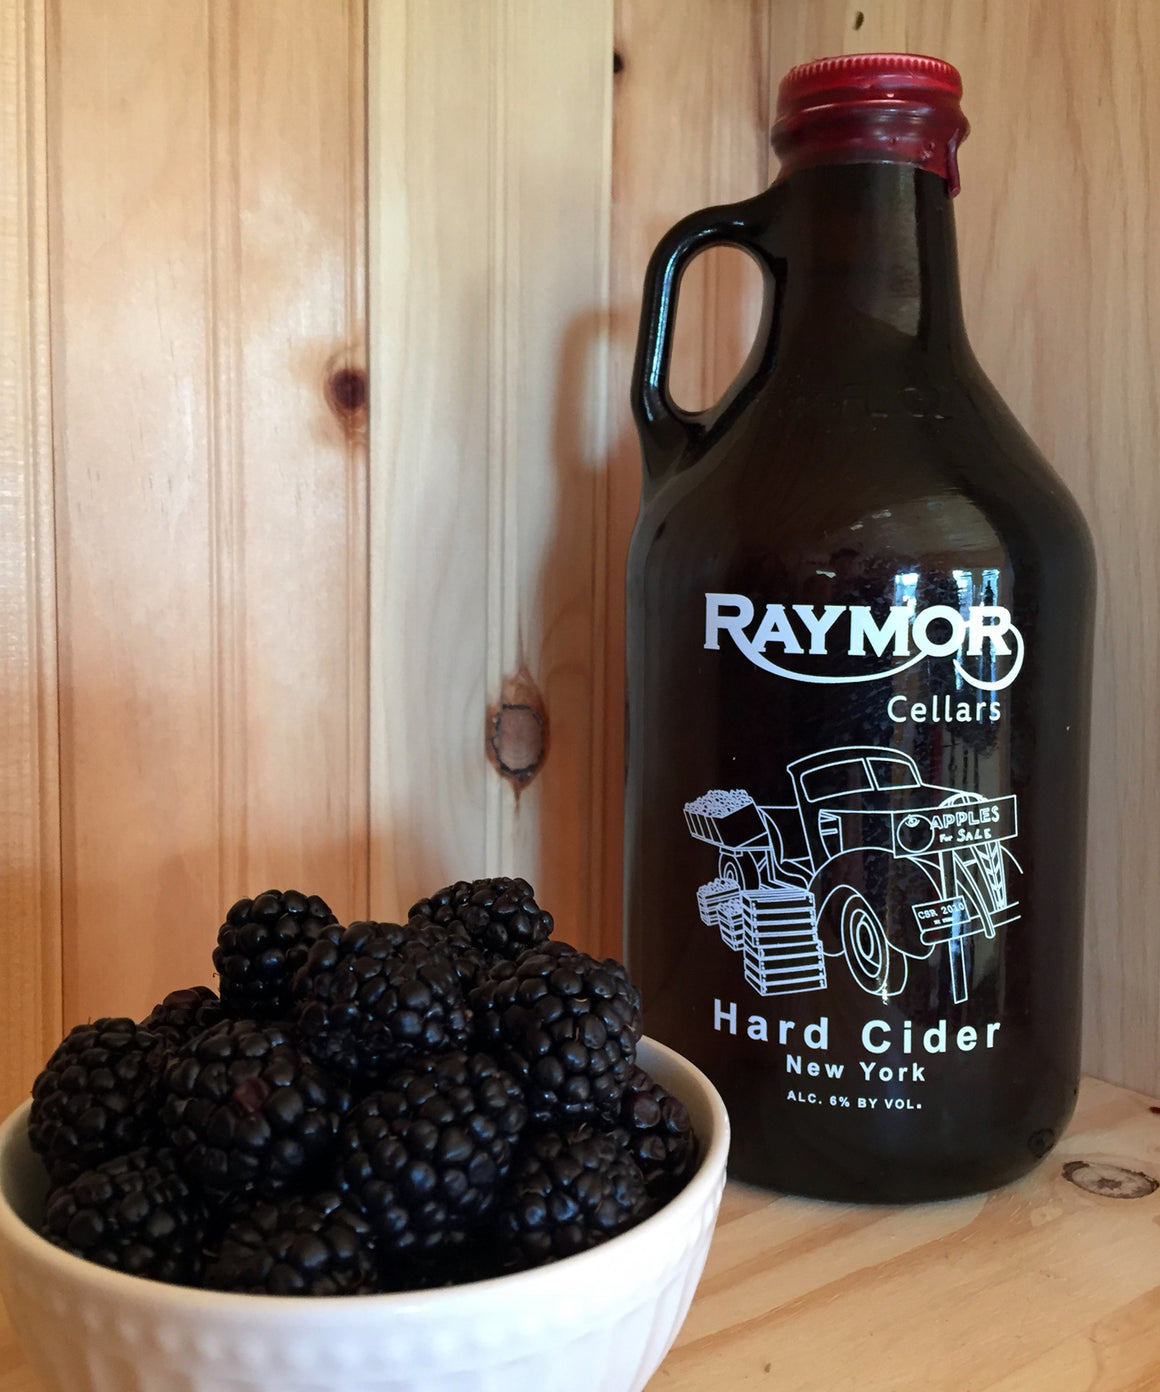 Our Black Berry Apple Hard Cider is a blend of eight different apple varietals with the addition of Black Berry. The cider is sweet with a definite black berry and apple flavor. Tastes like no other.     Percentage of Alcohol: 6%. Price is $15.00.